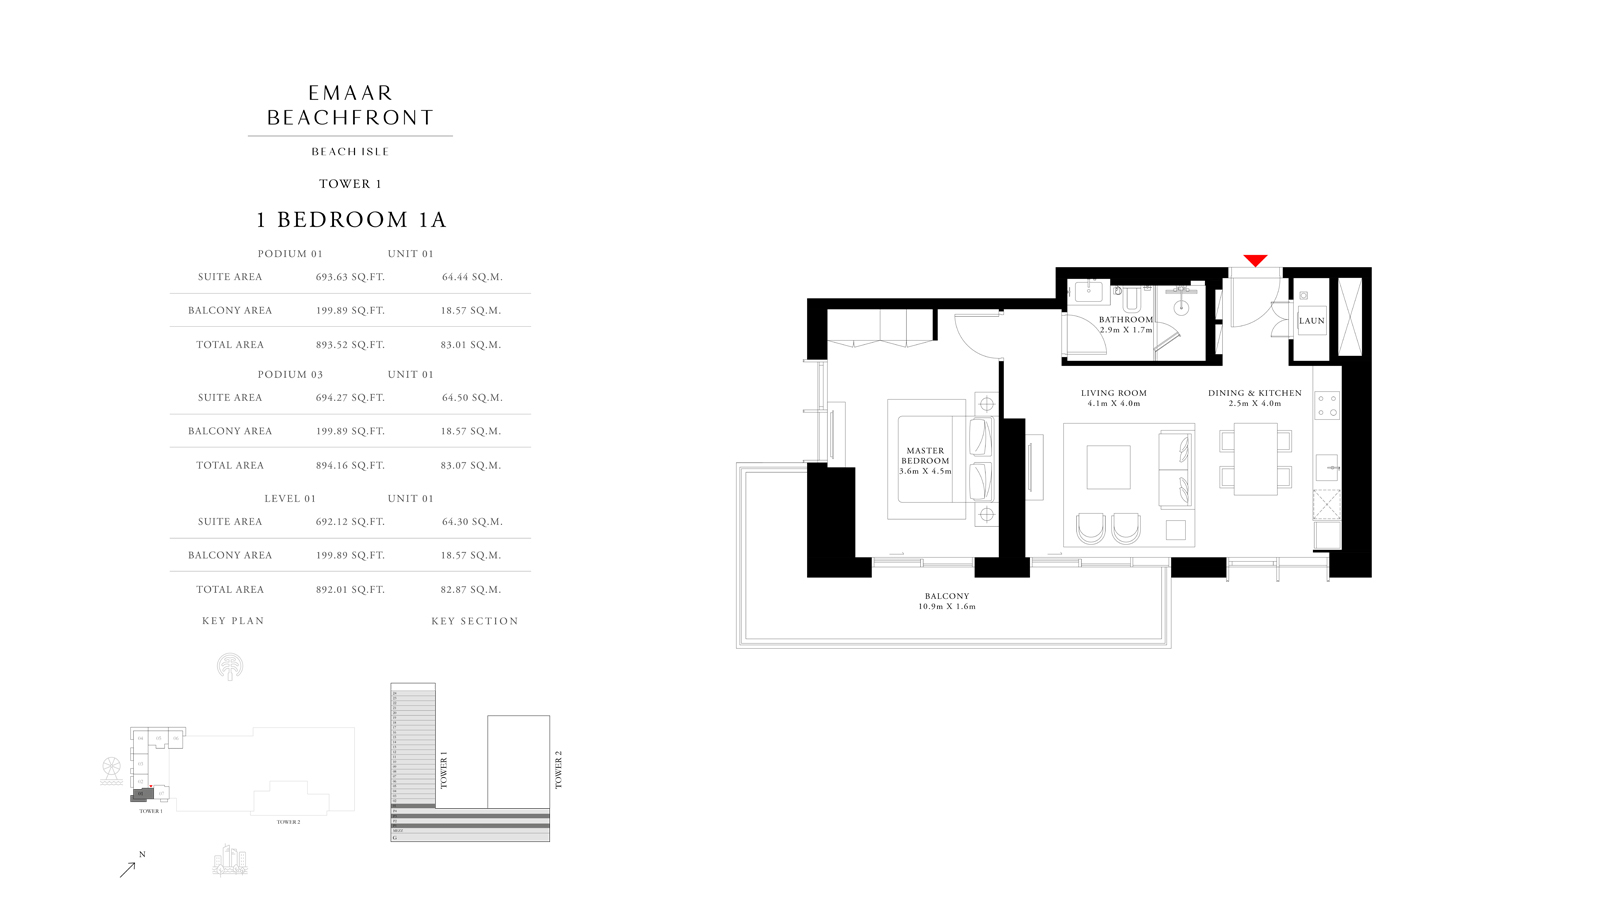 1 Bedroom 1A Tower 1, Size 892 sq ft